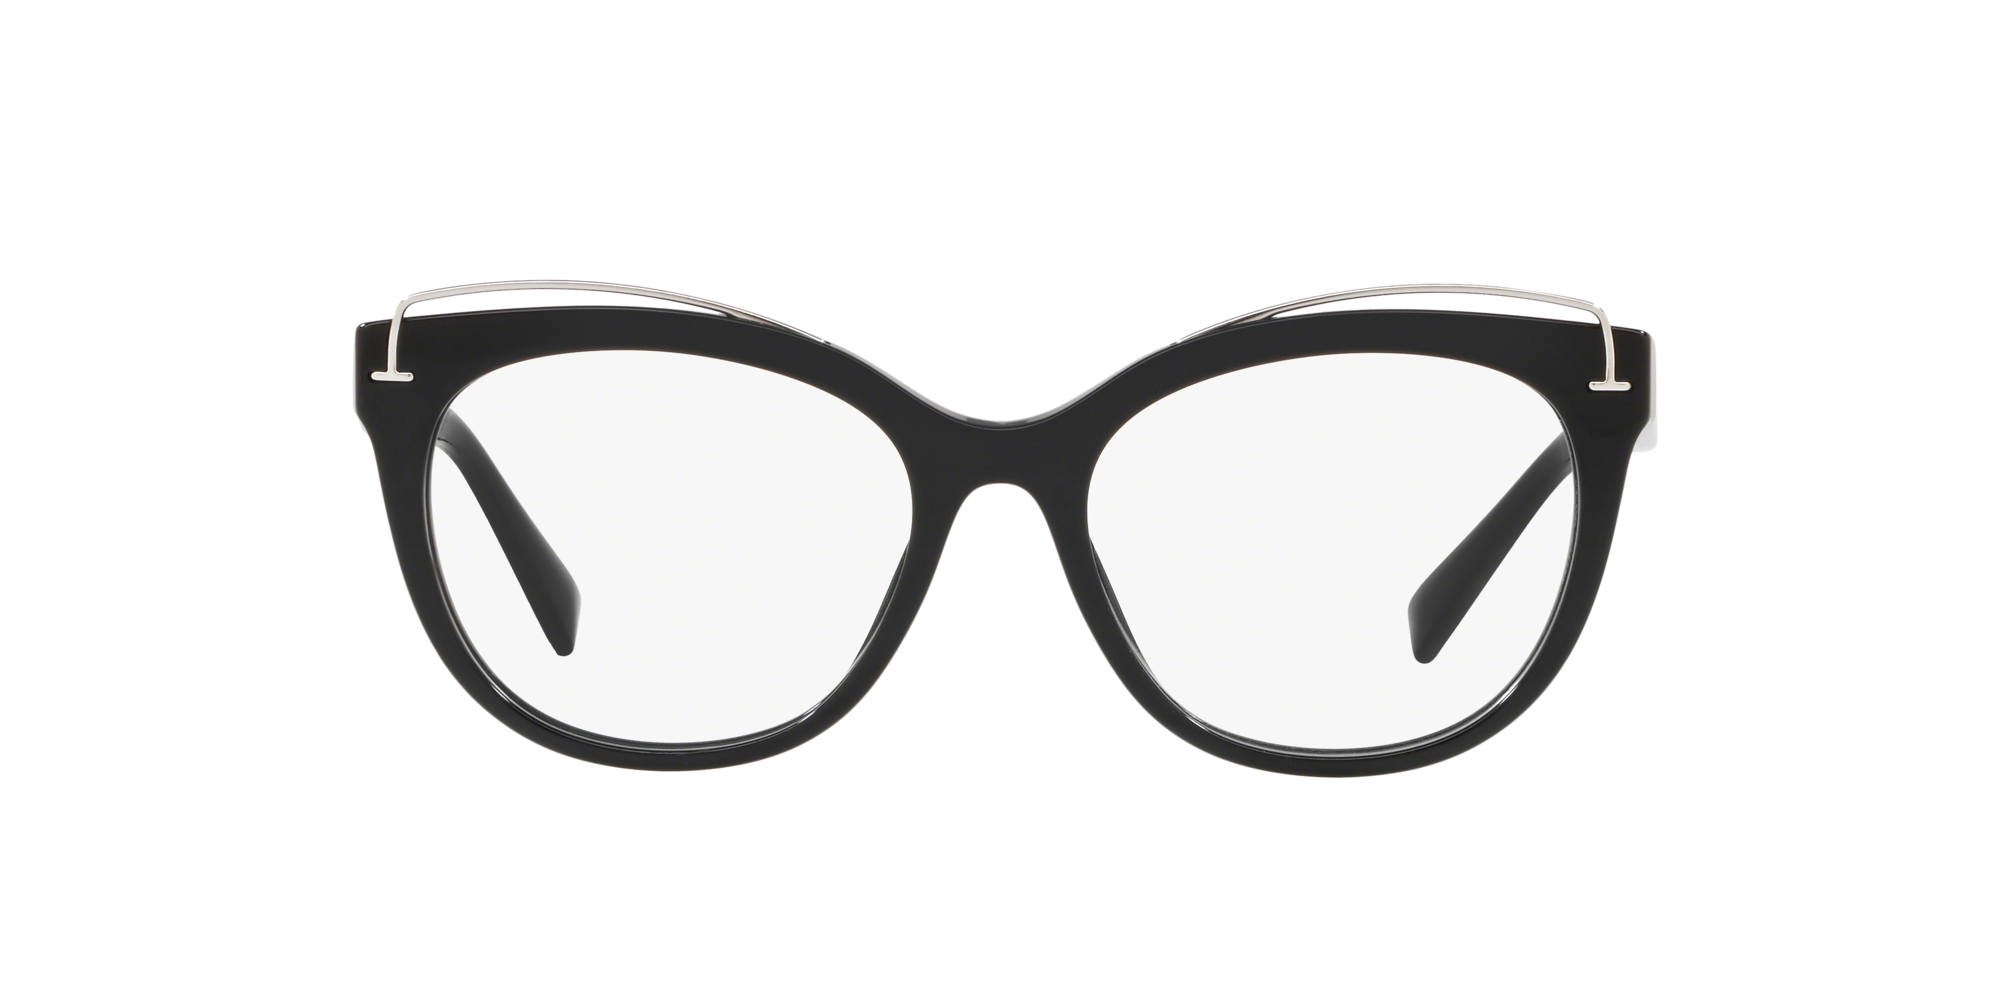 Image for TF2166 from LensCrafters   Glasses, Prescription Glasses Online, Eyewear